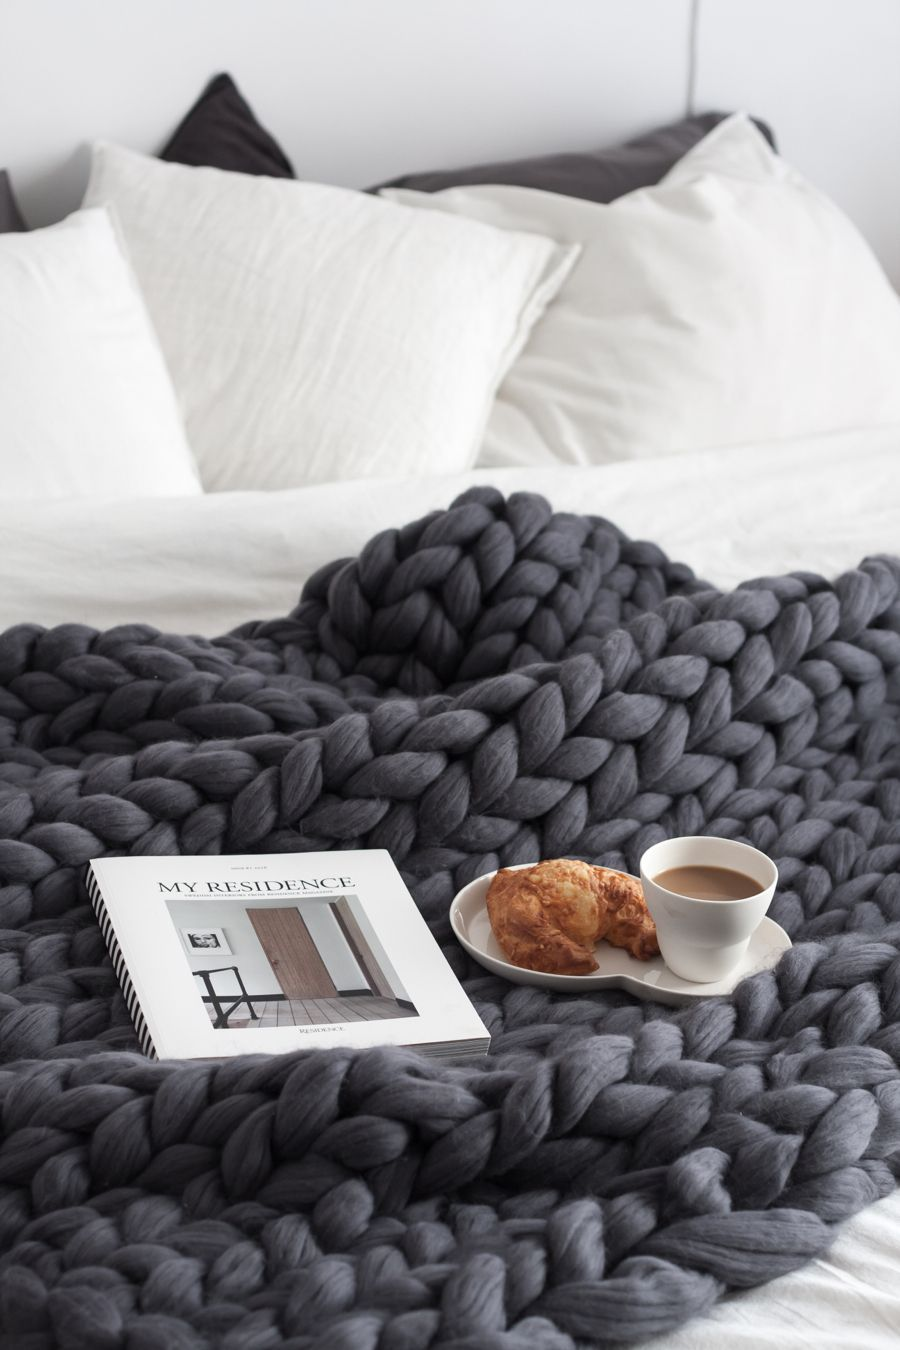 What a perfect setting for breakfast in bed. Love that large knit blanket! Wonderful Sunday mornings.